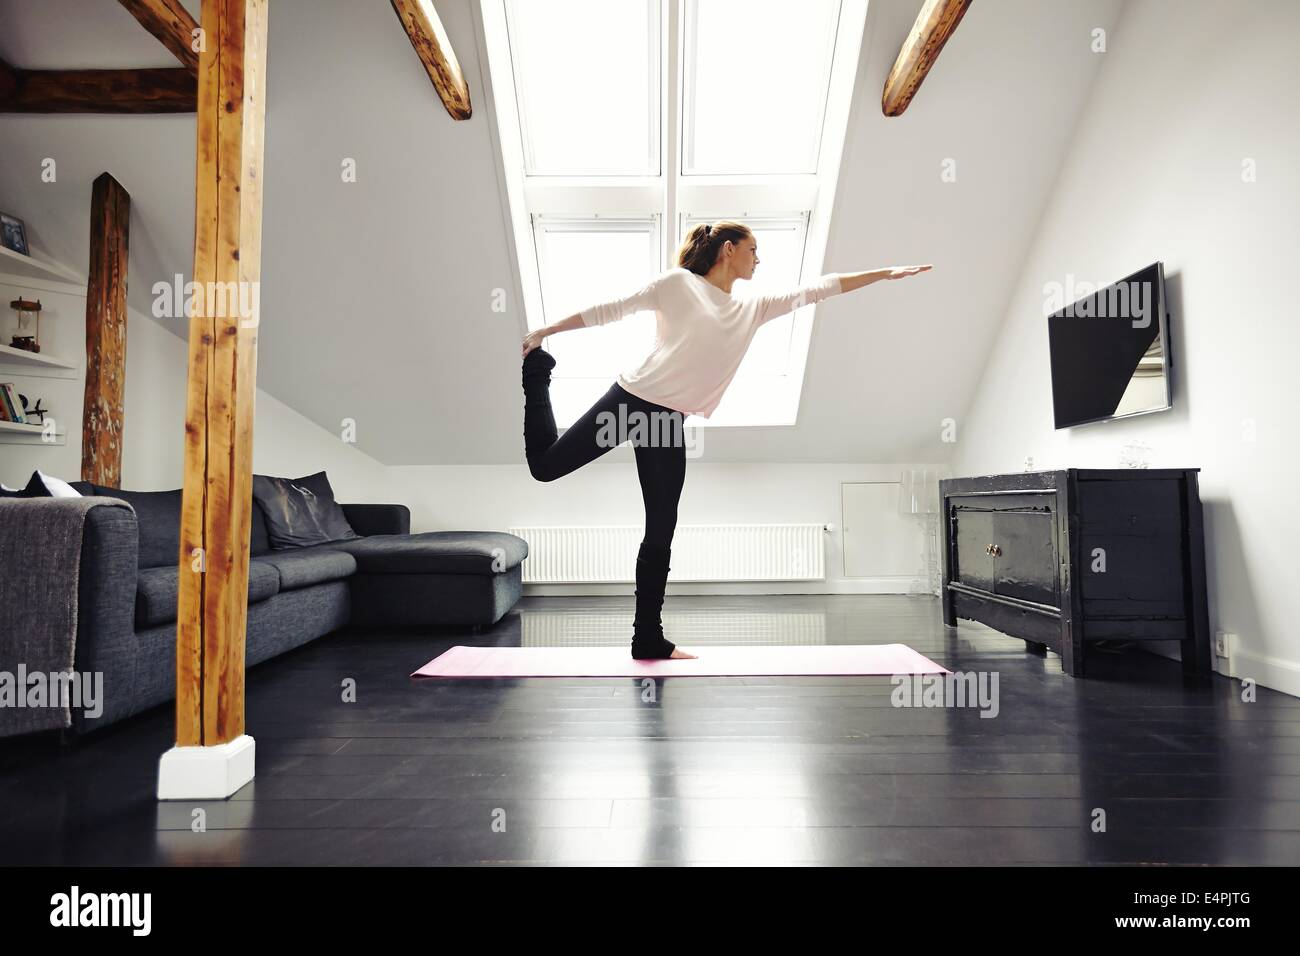 Fitness female exercising in living room. Stretching and balancing on one leg at home. Caucasian female practicing - Stock Image